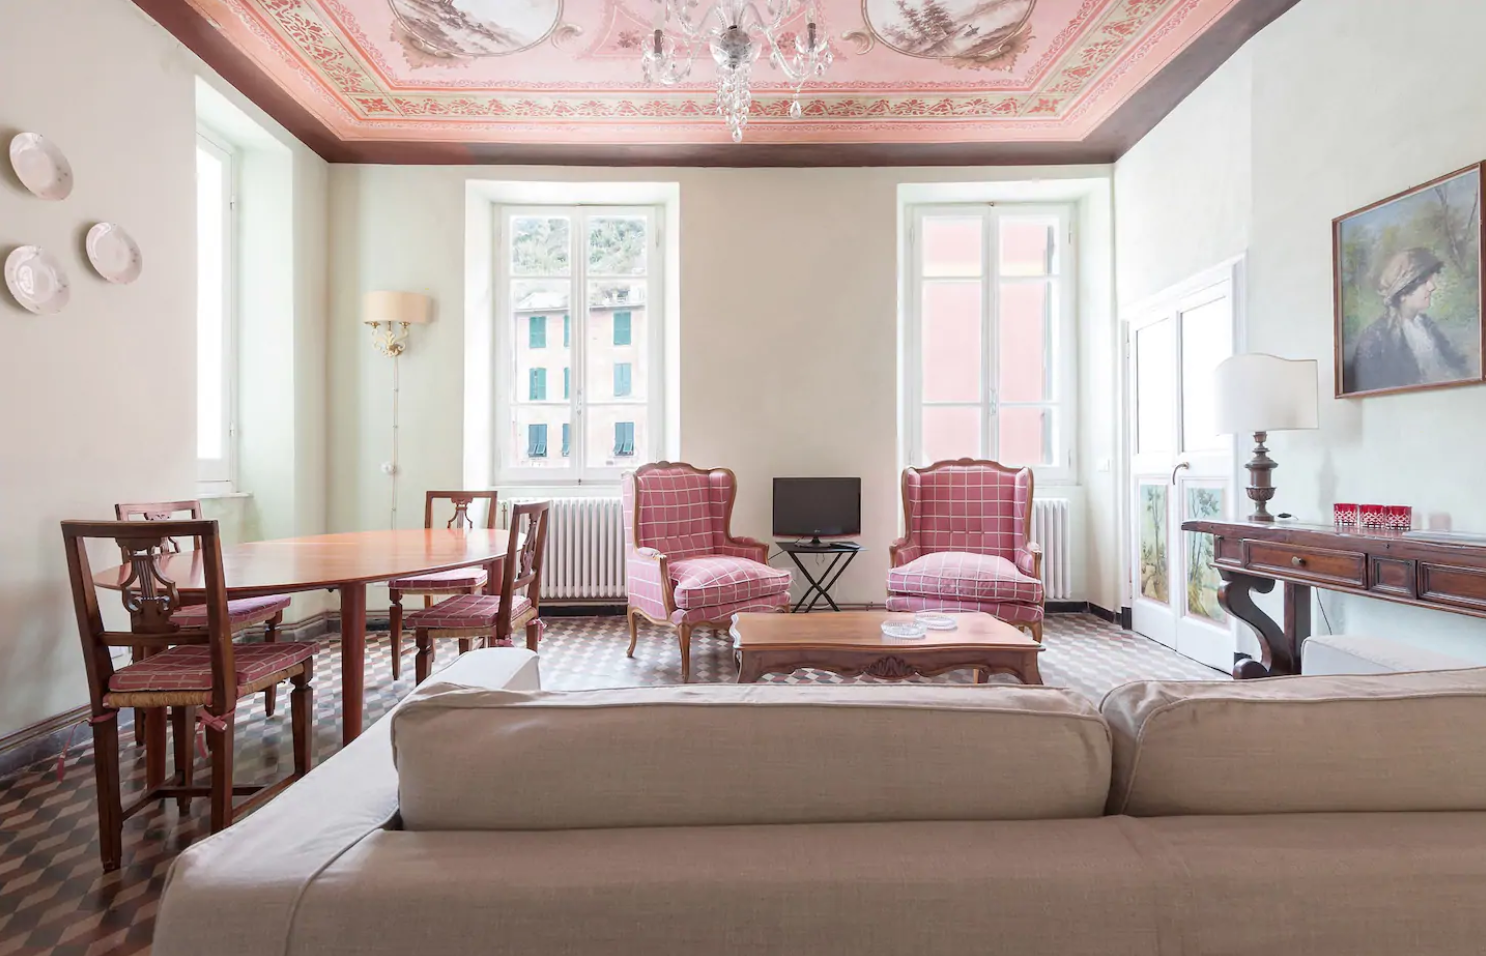 this airbnb in cinque terre is one of the only ones to keep its original decor